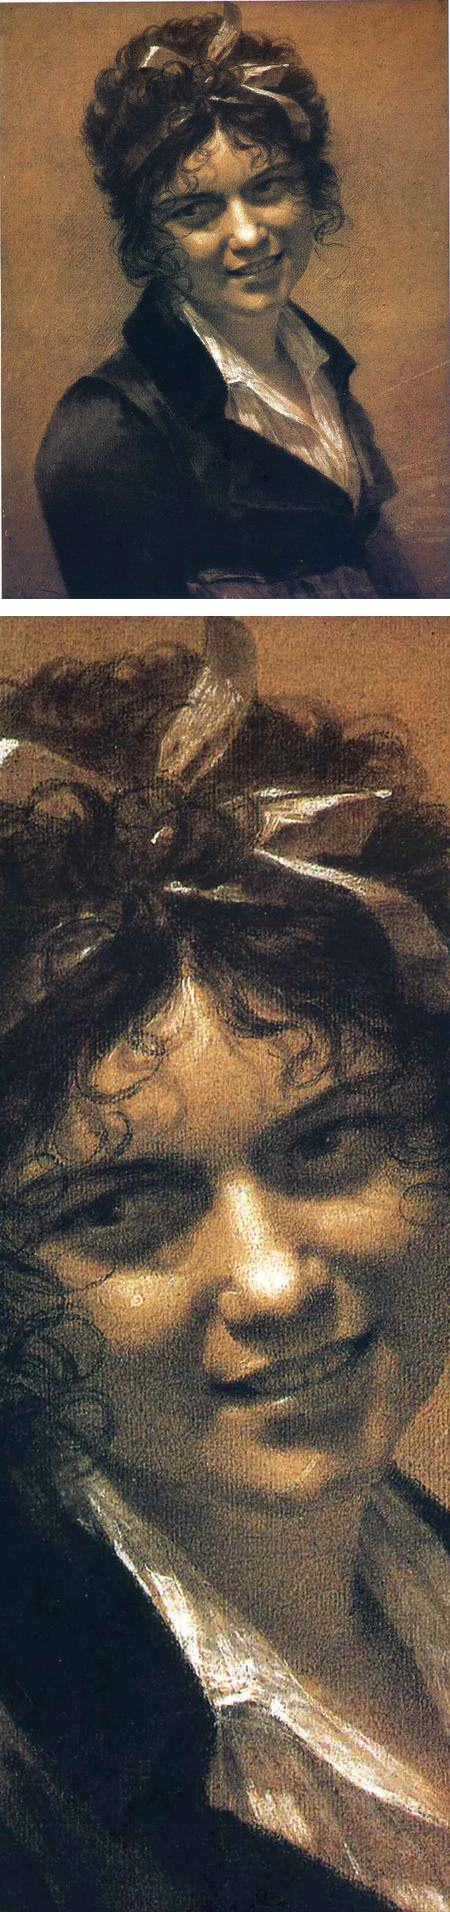 Portrait of Constance Mayer, Pierre-Paul Prud'hon, black and white chalk drawing on toned paper